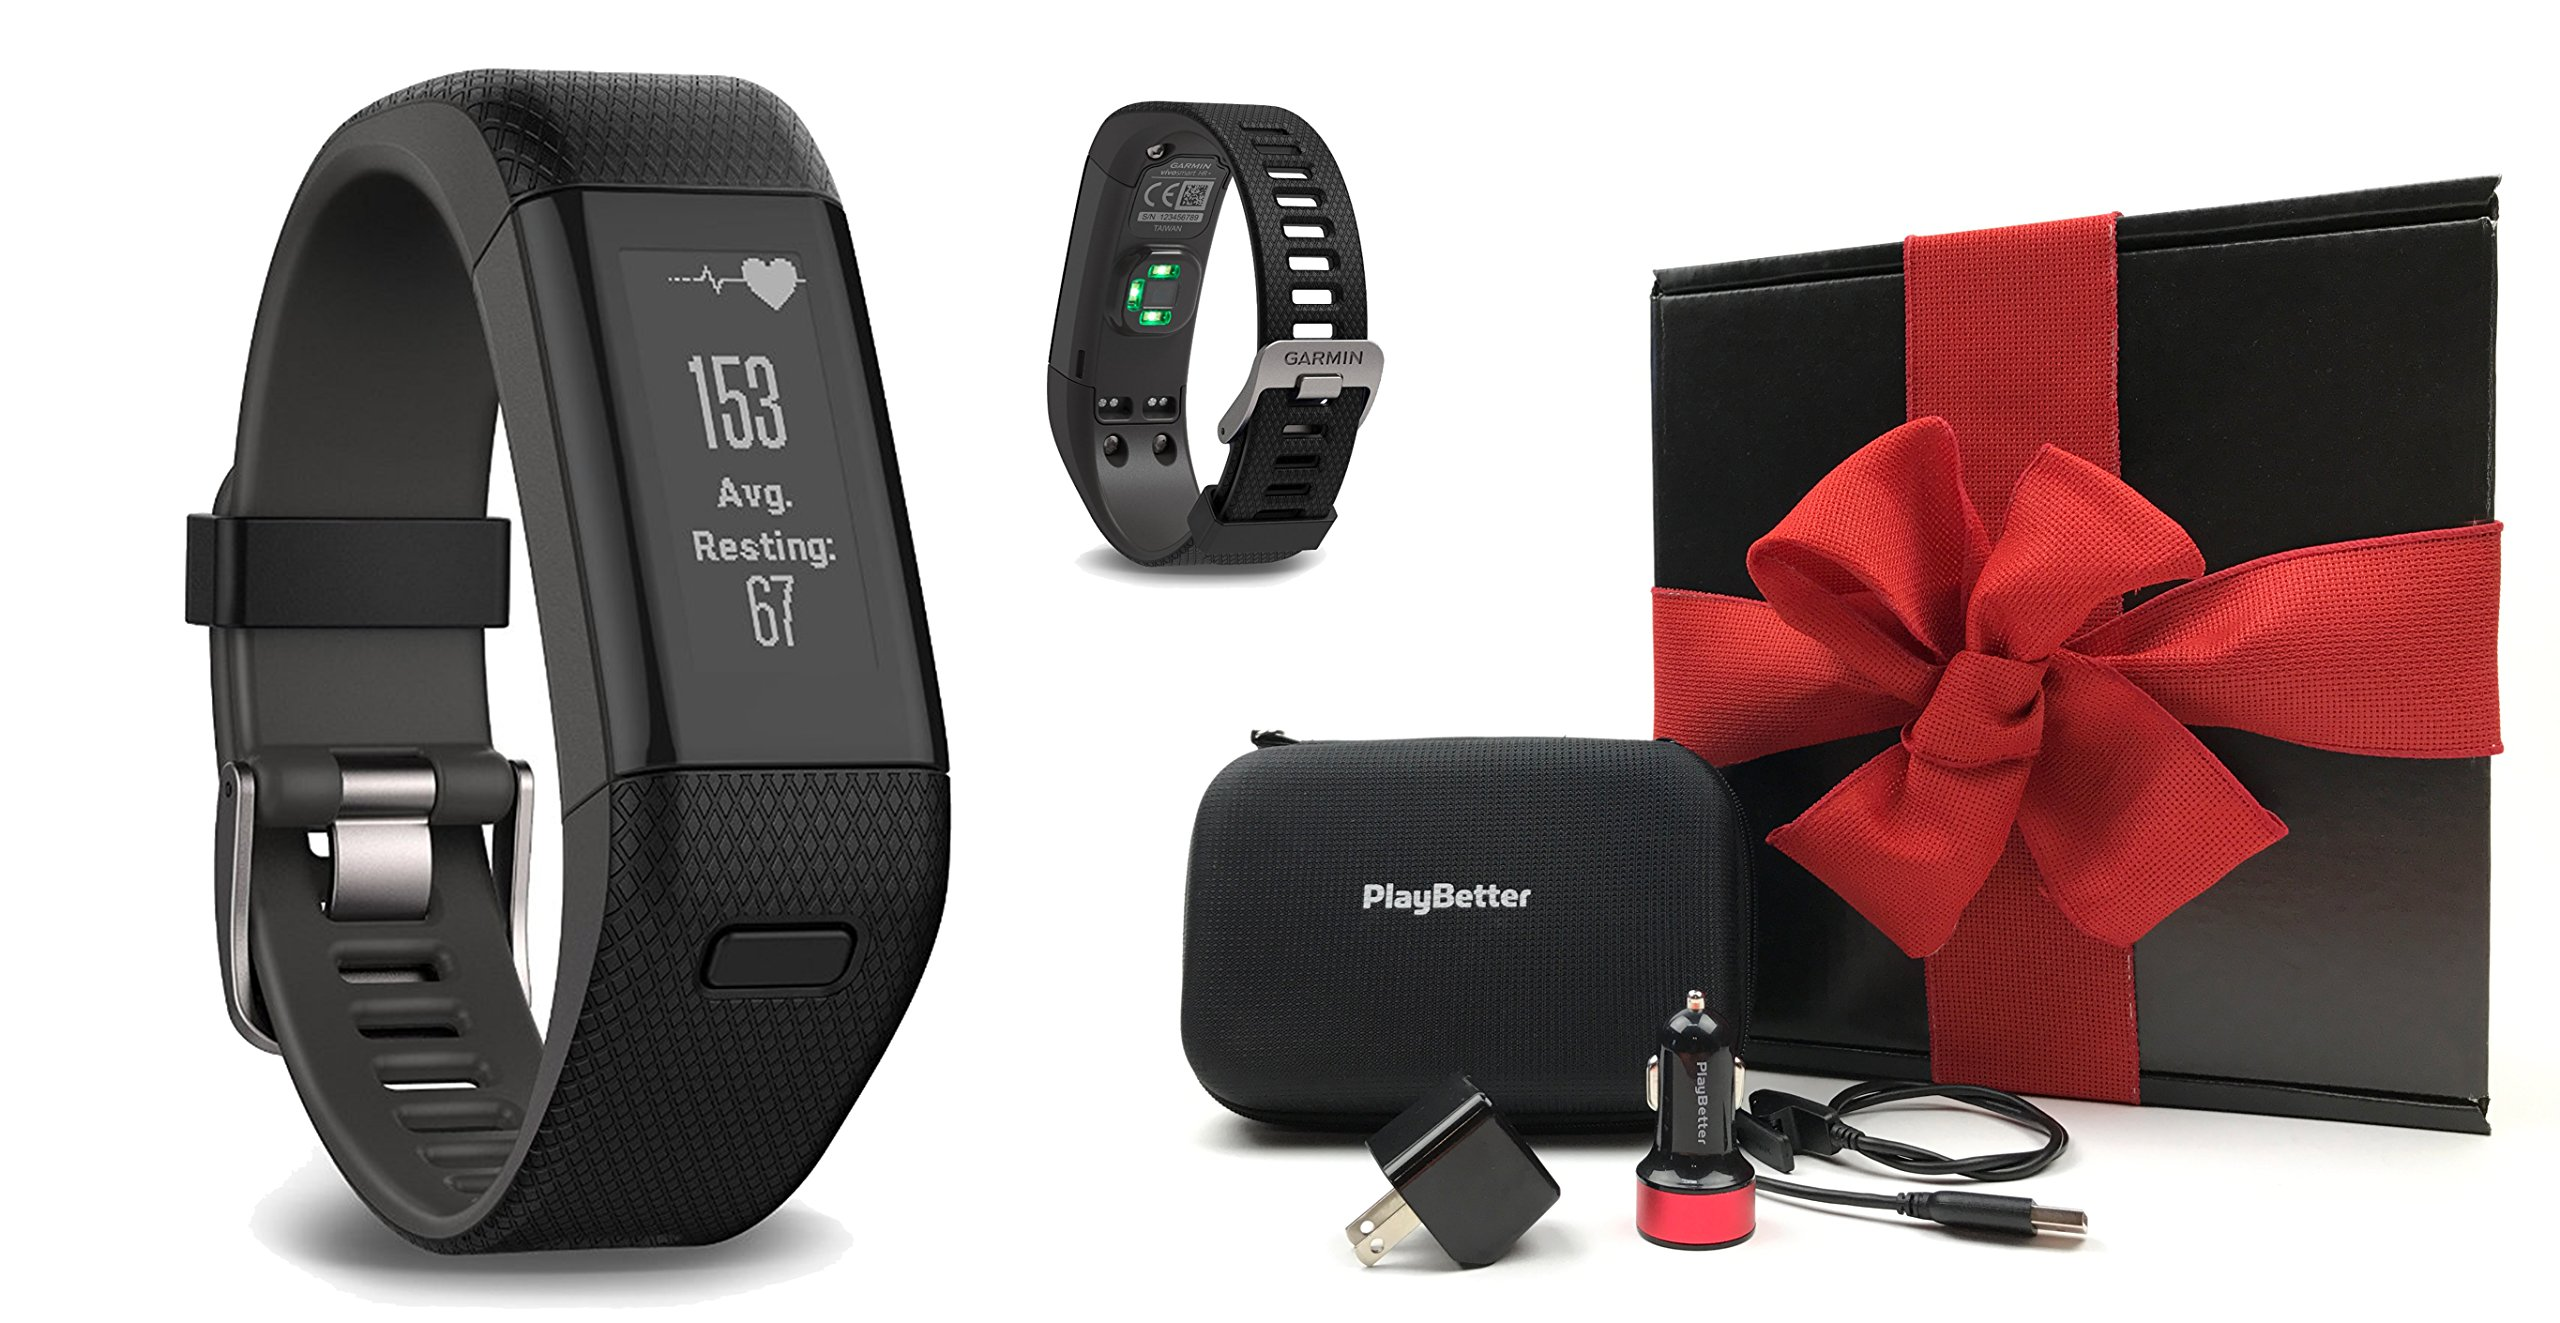 Garmin vivosmart HR+ (Black) GIFT BOX Bundle | Includes GPS Fitness Band/Activity Tracker with Wrist-HR, PlayBetter USB Car/Wall Adapter, Protective Case | Black Gift Box